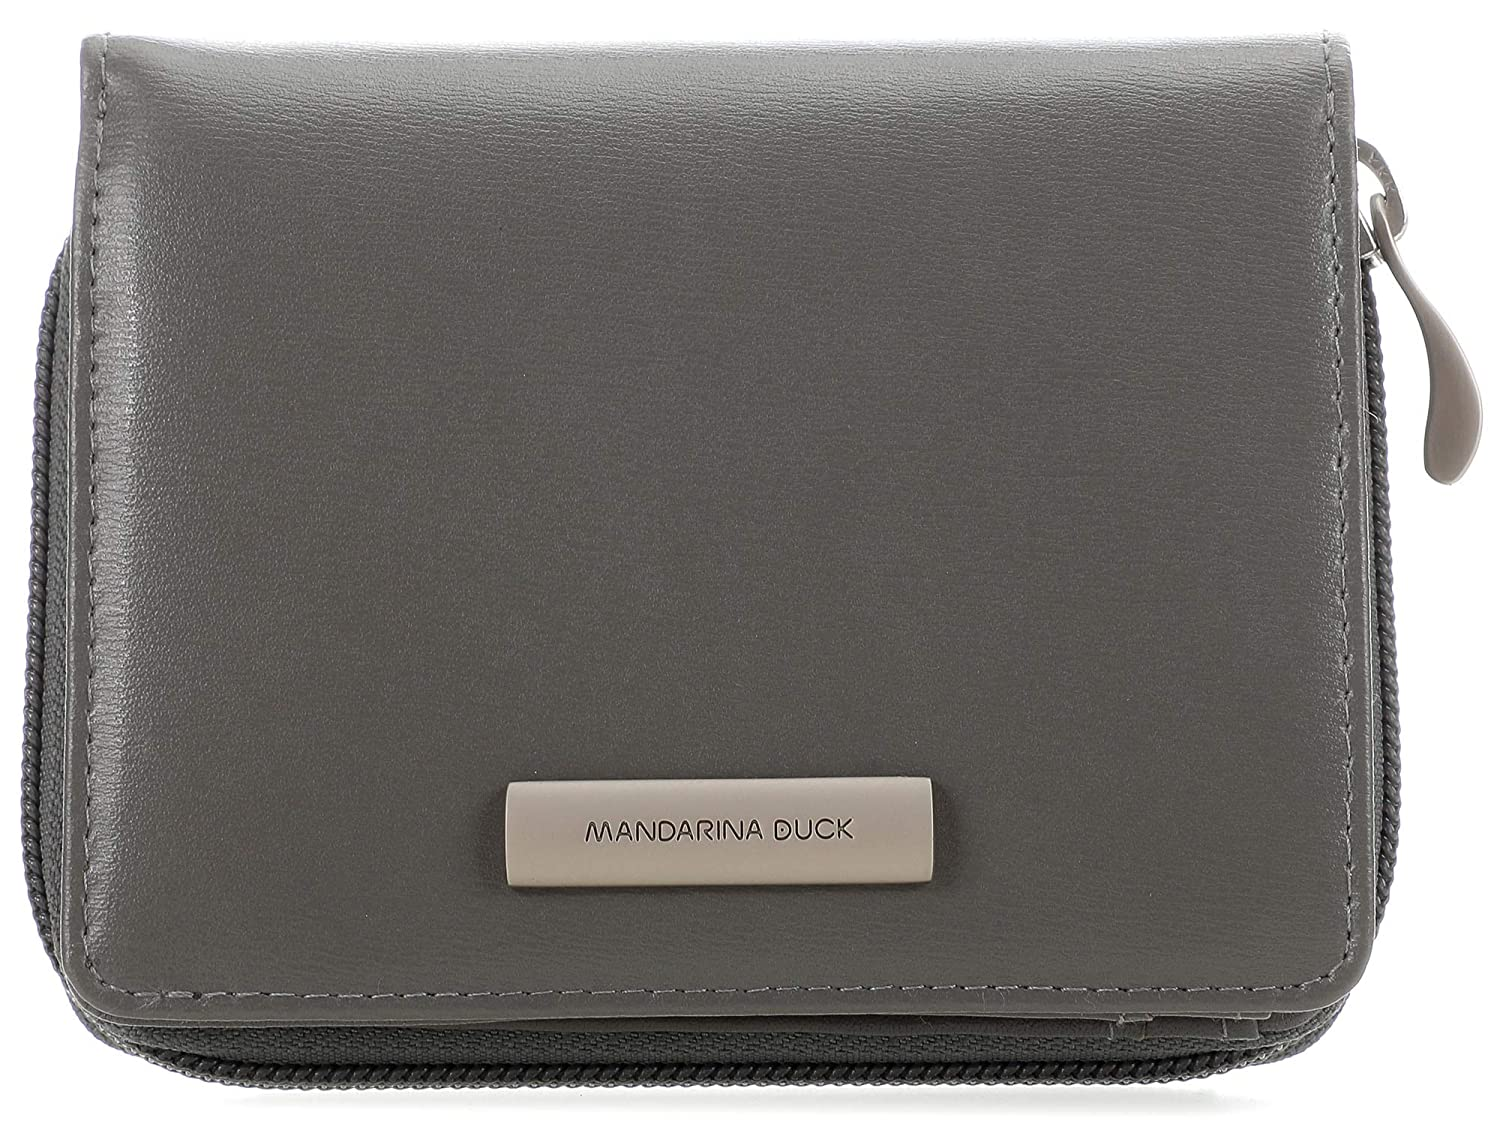 Mandarina Duck Hera 3.0 Monedero gris: Amazon.es: Ropa y ...